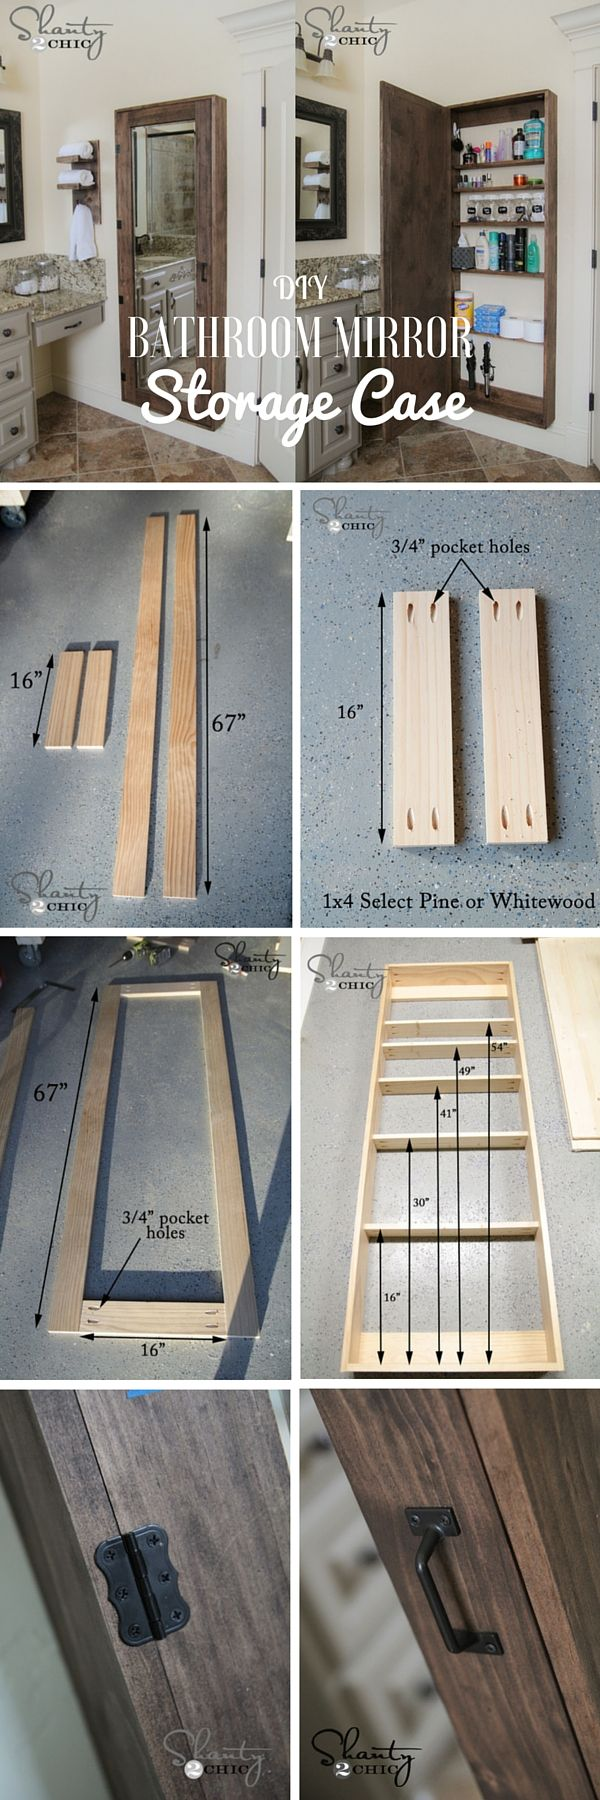 Check out the tutorial: DIY Bathroom Mirror Storage Case #ISDDIY #ISDDecor @istandarddesign